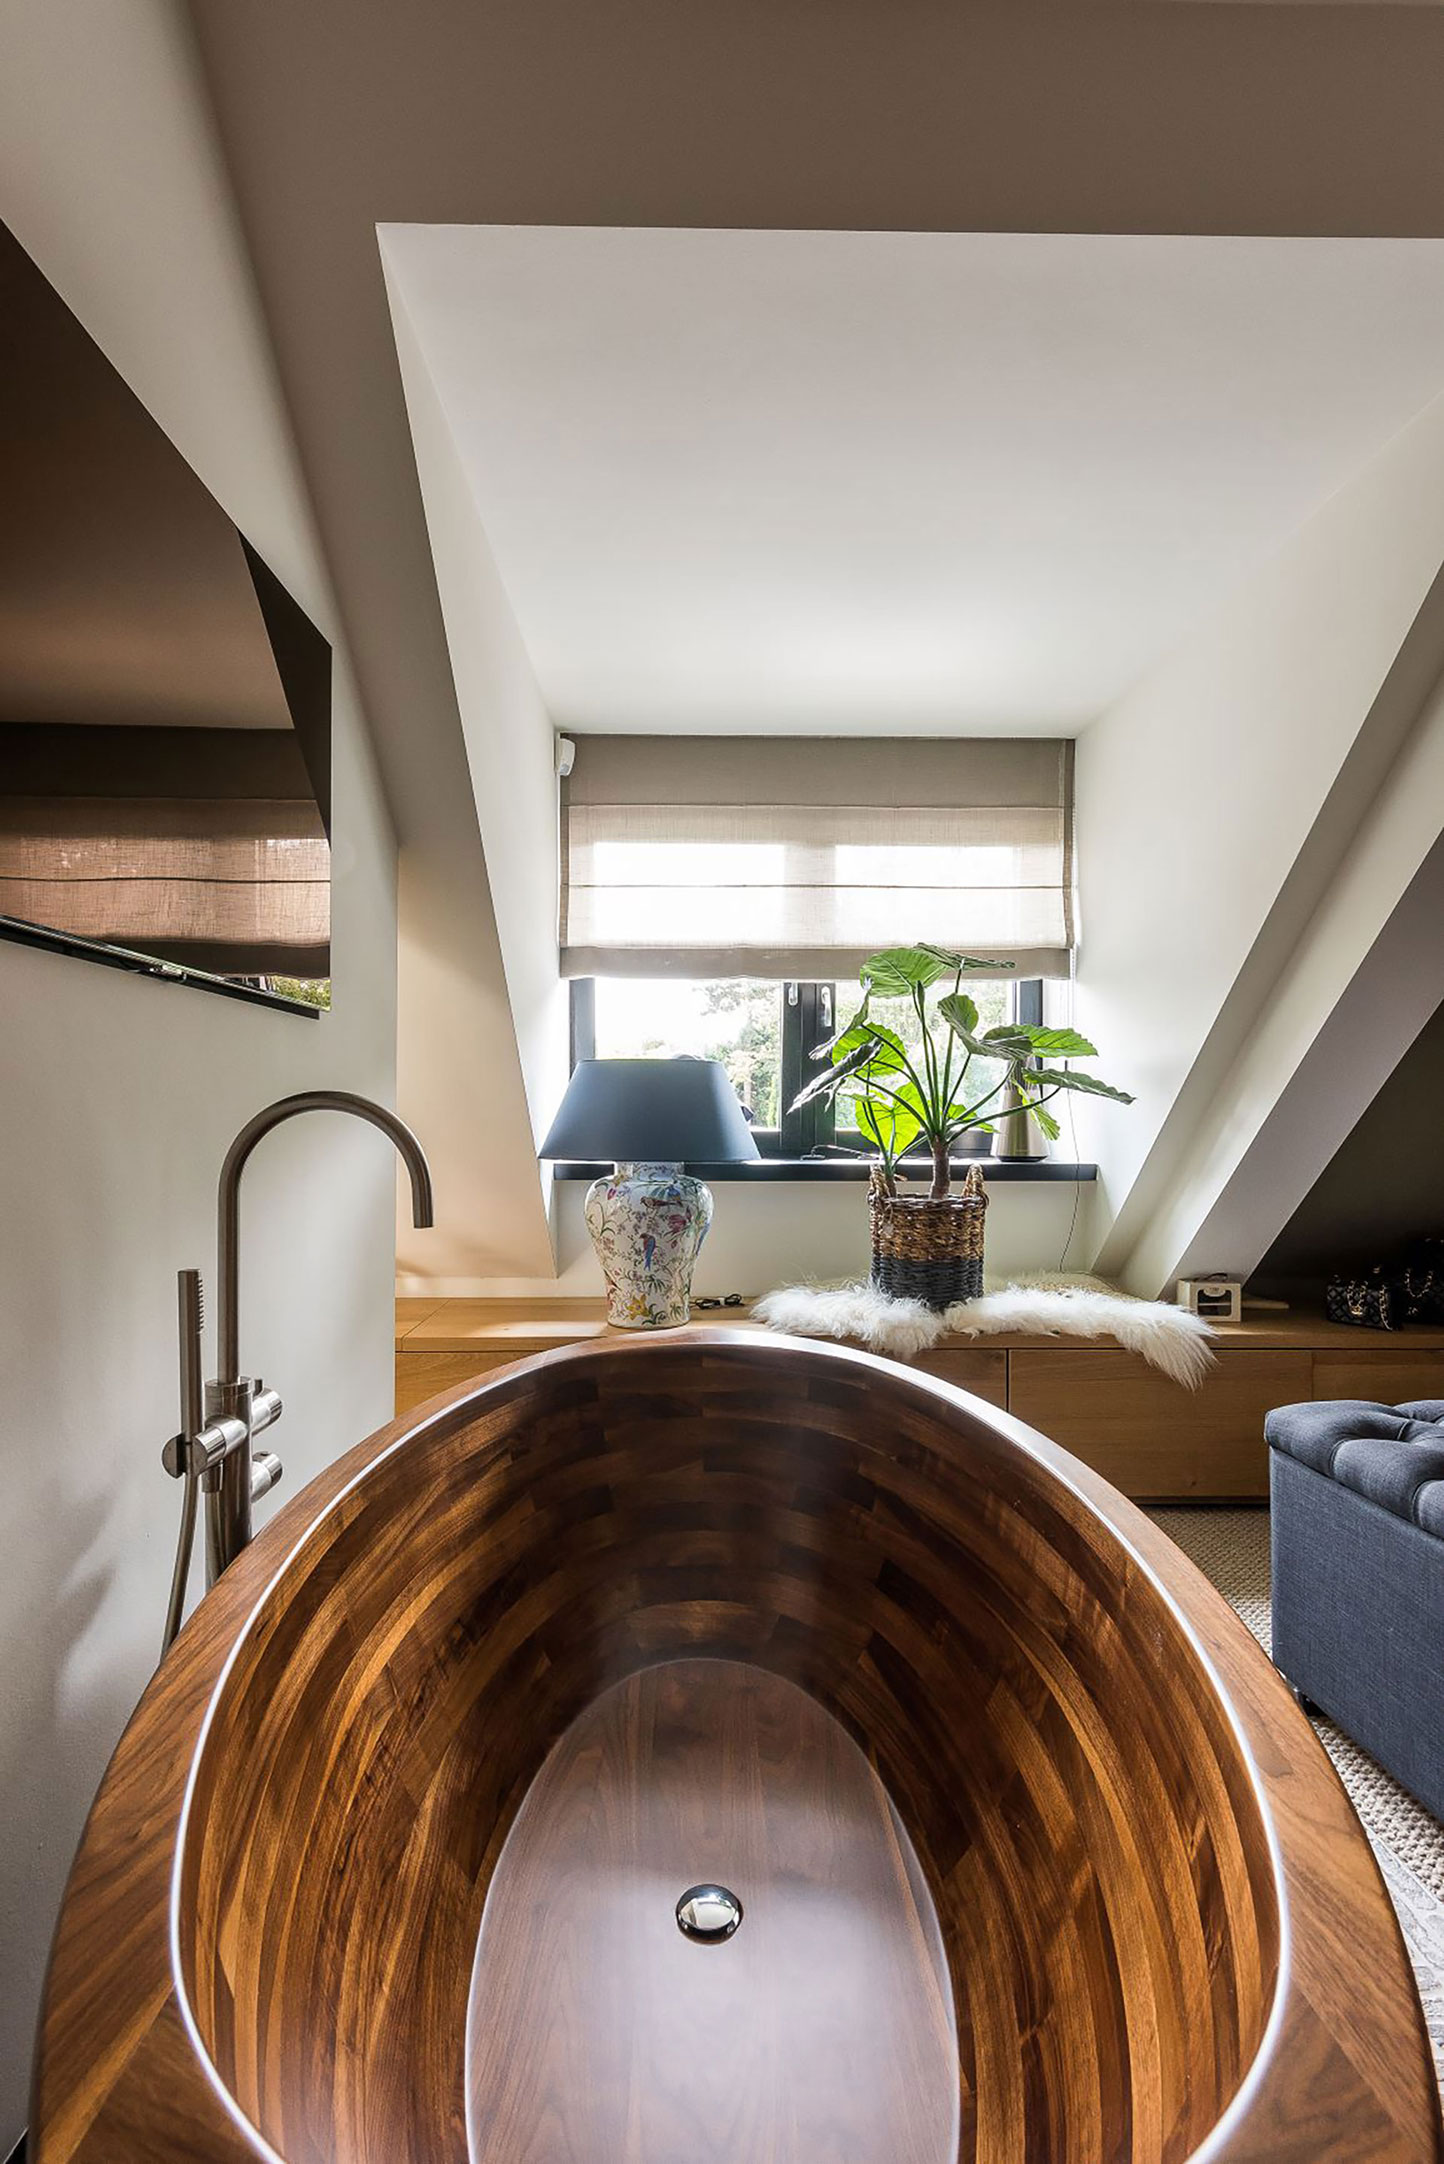 Image no. 2 of Wooden bathtub Baula in Walnut - Residence in Netherlands